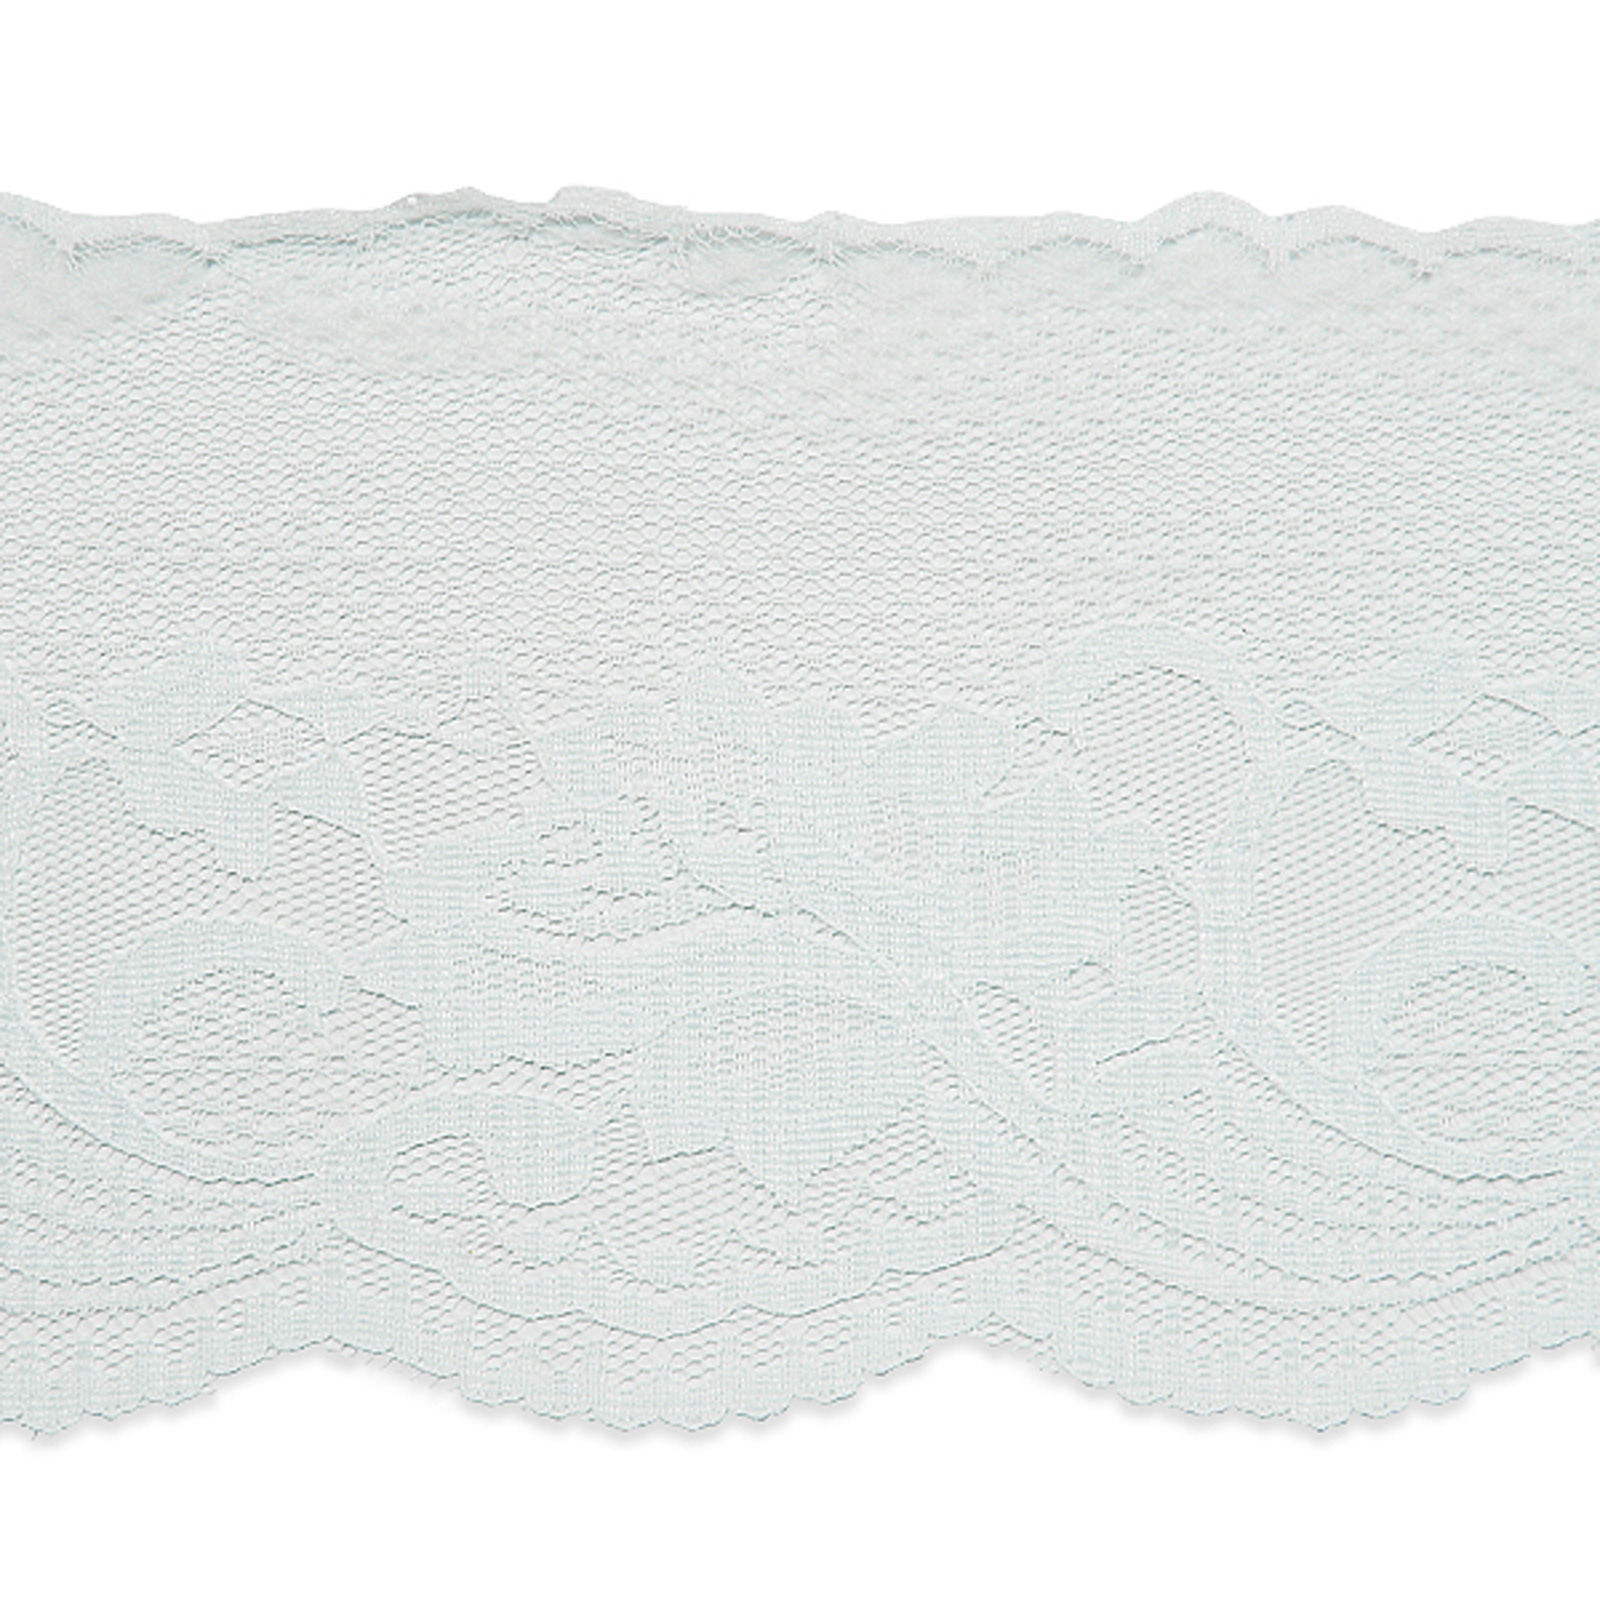 4 1/2'' Penelope Chantilly Lace Trim White by Expo in USA